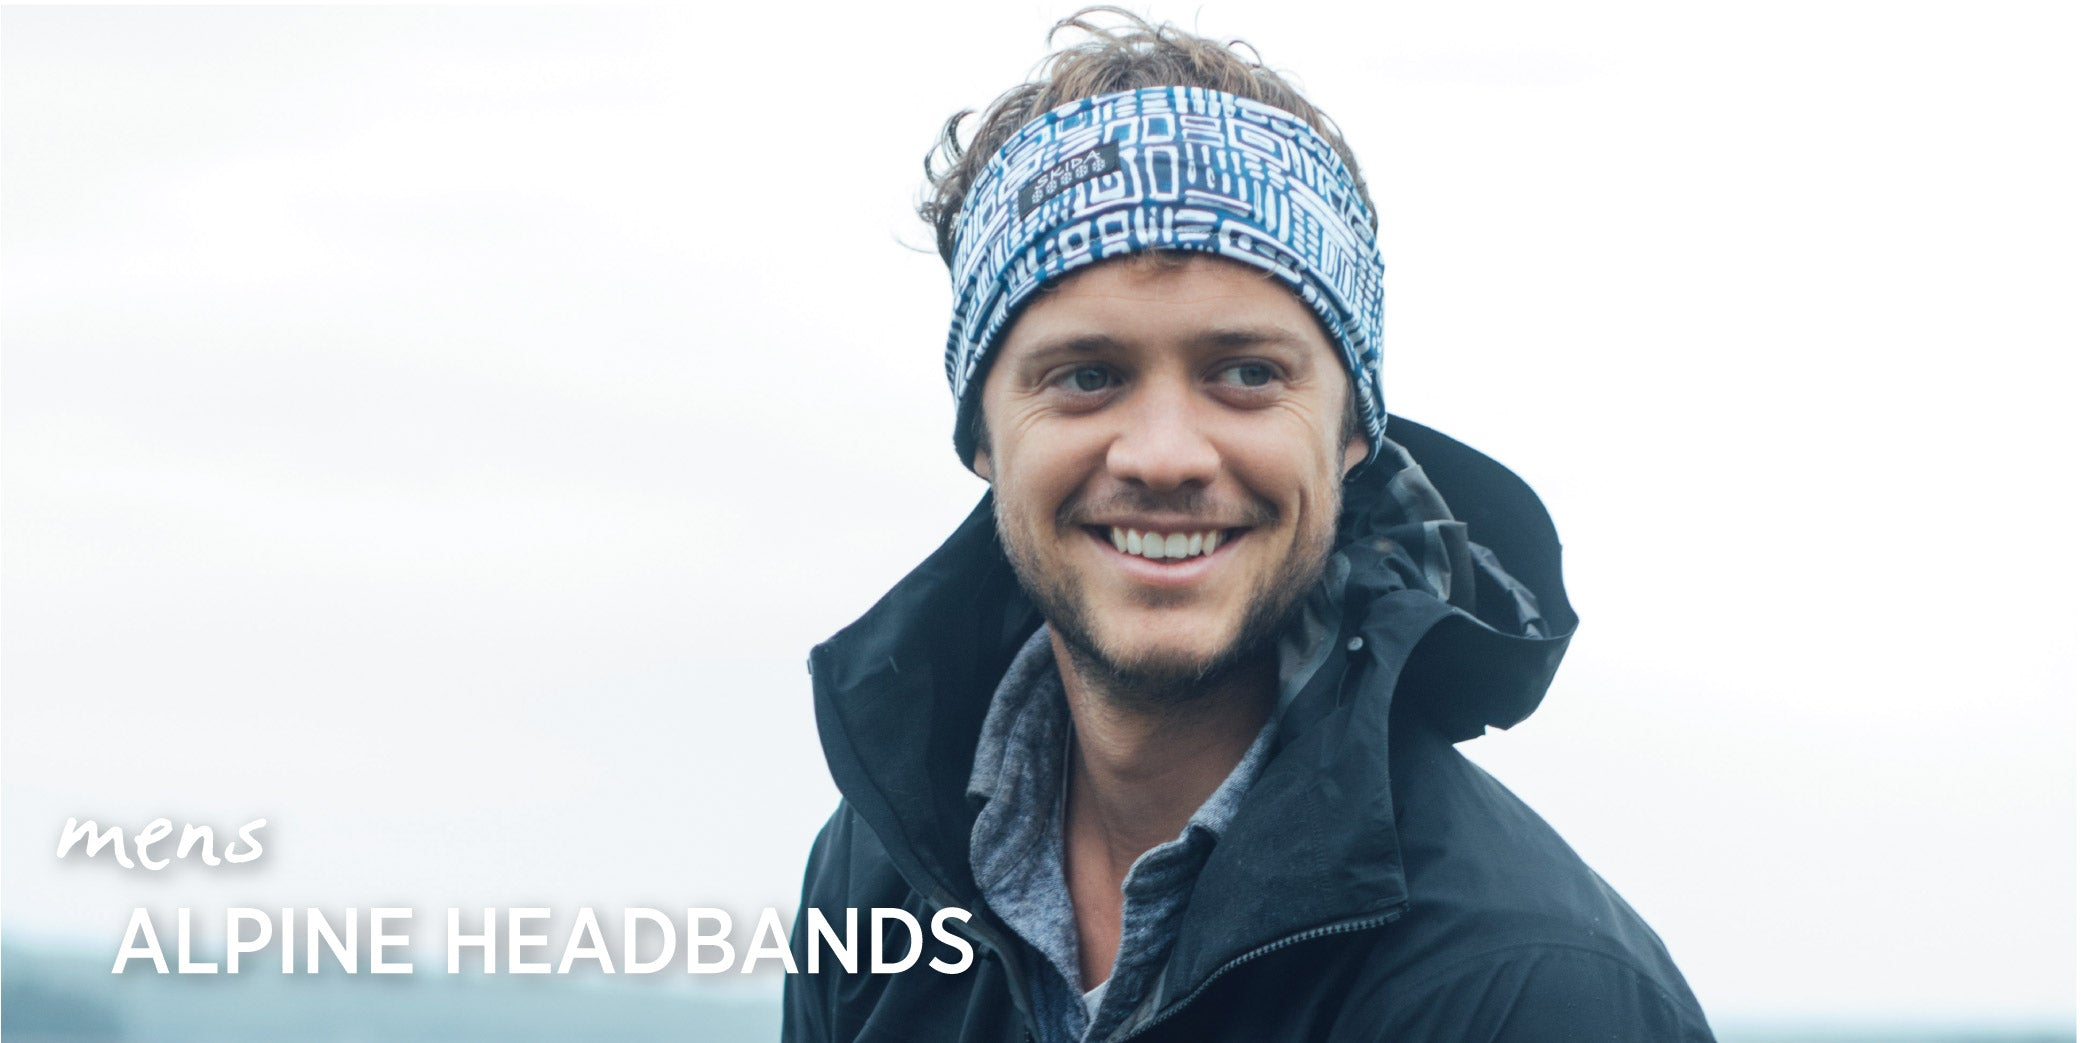 Shop Men's Alpine Headbands!